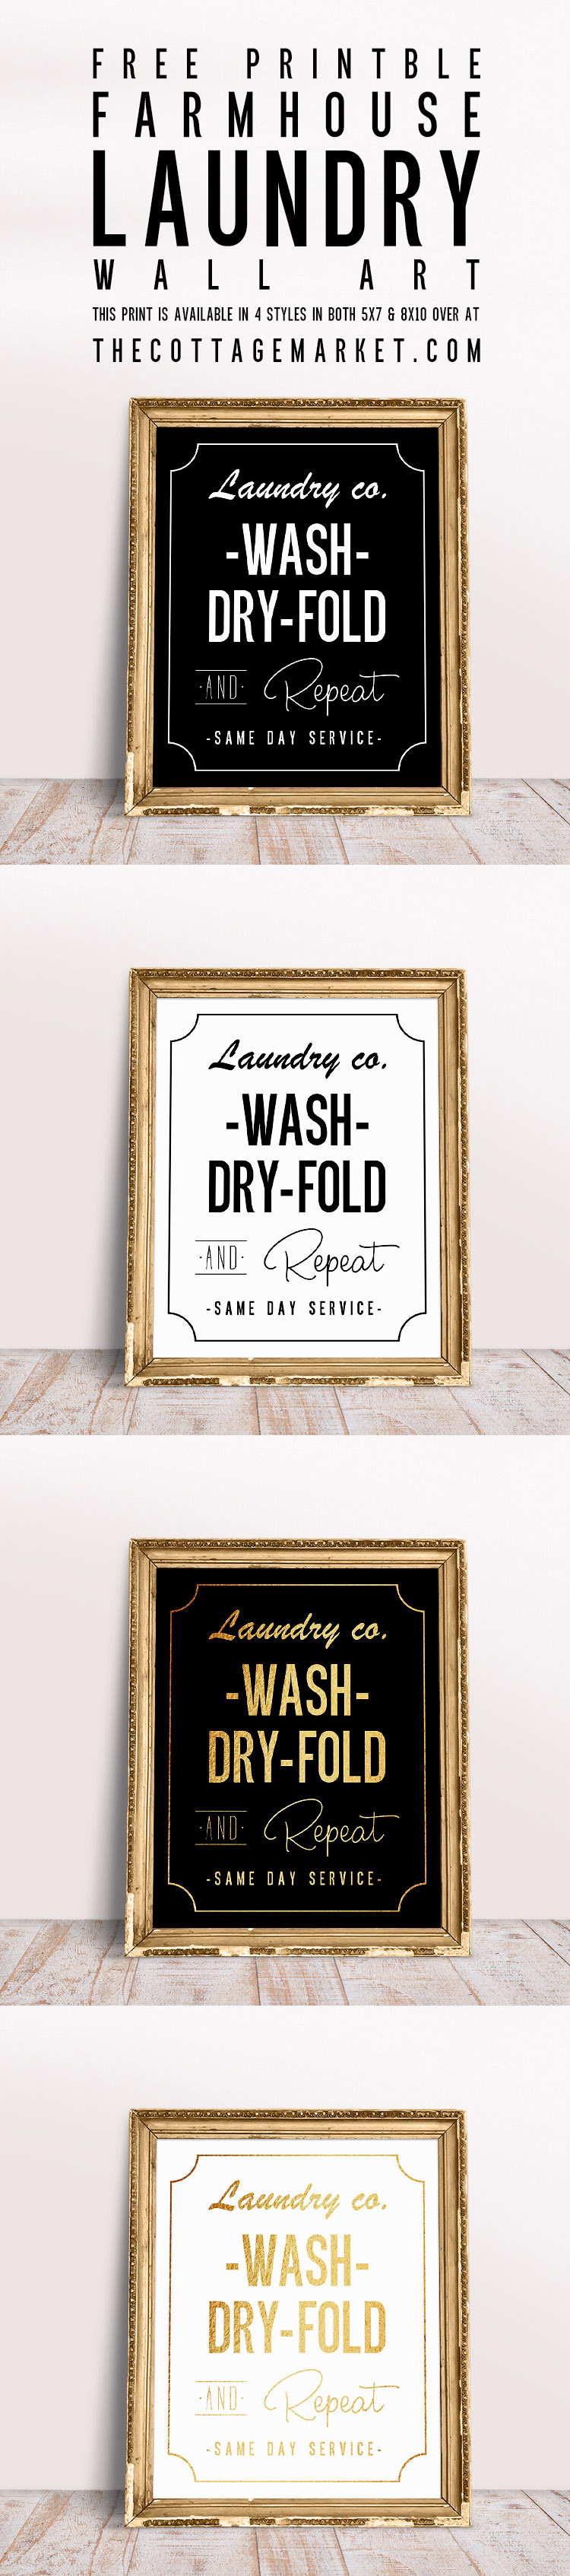 Free Laundry Room Printable Wall Art from The Cottage Market